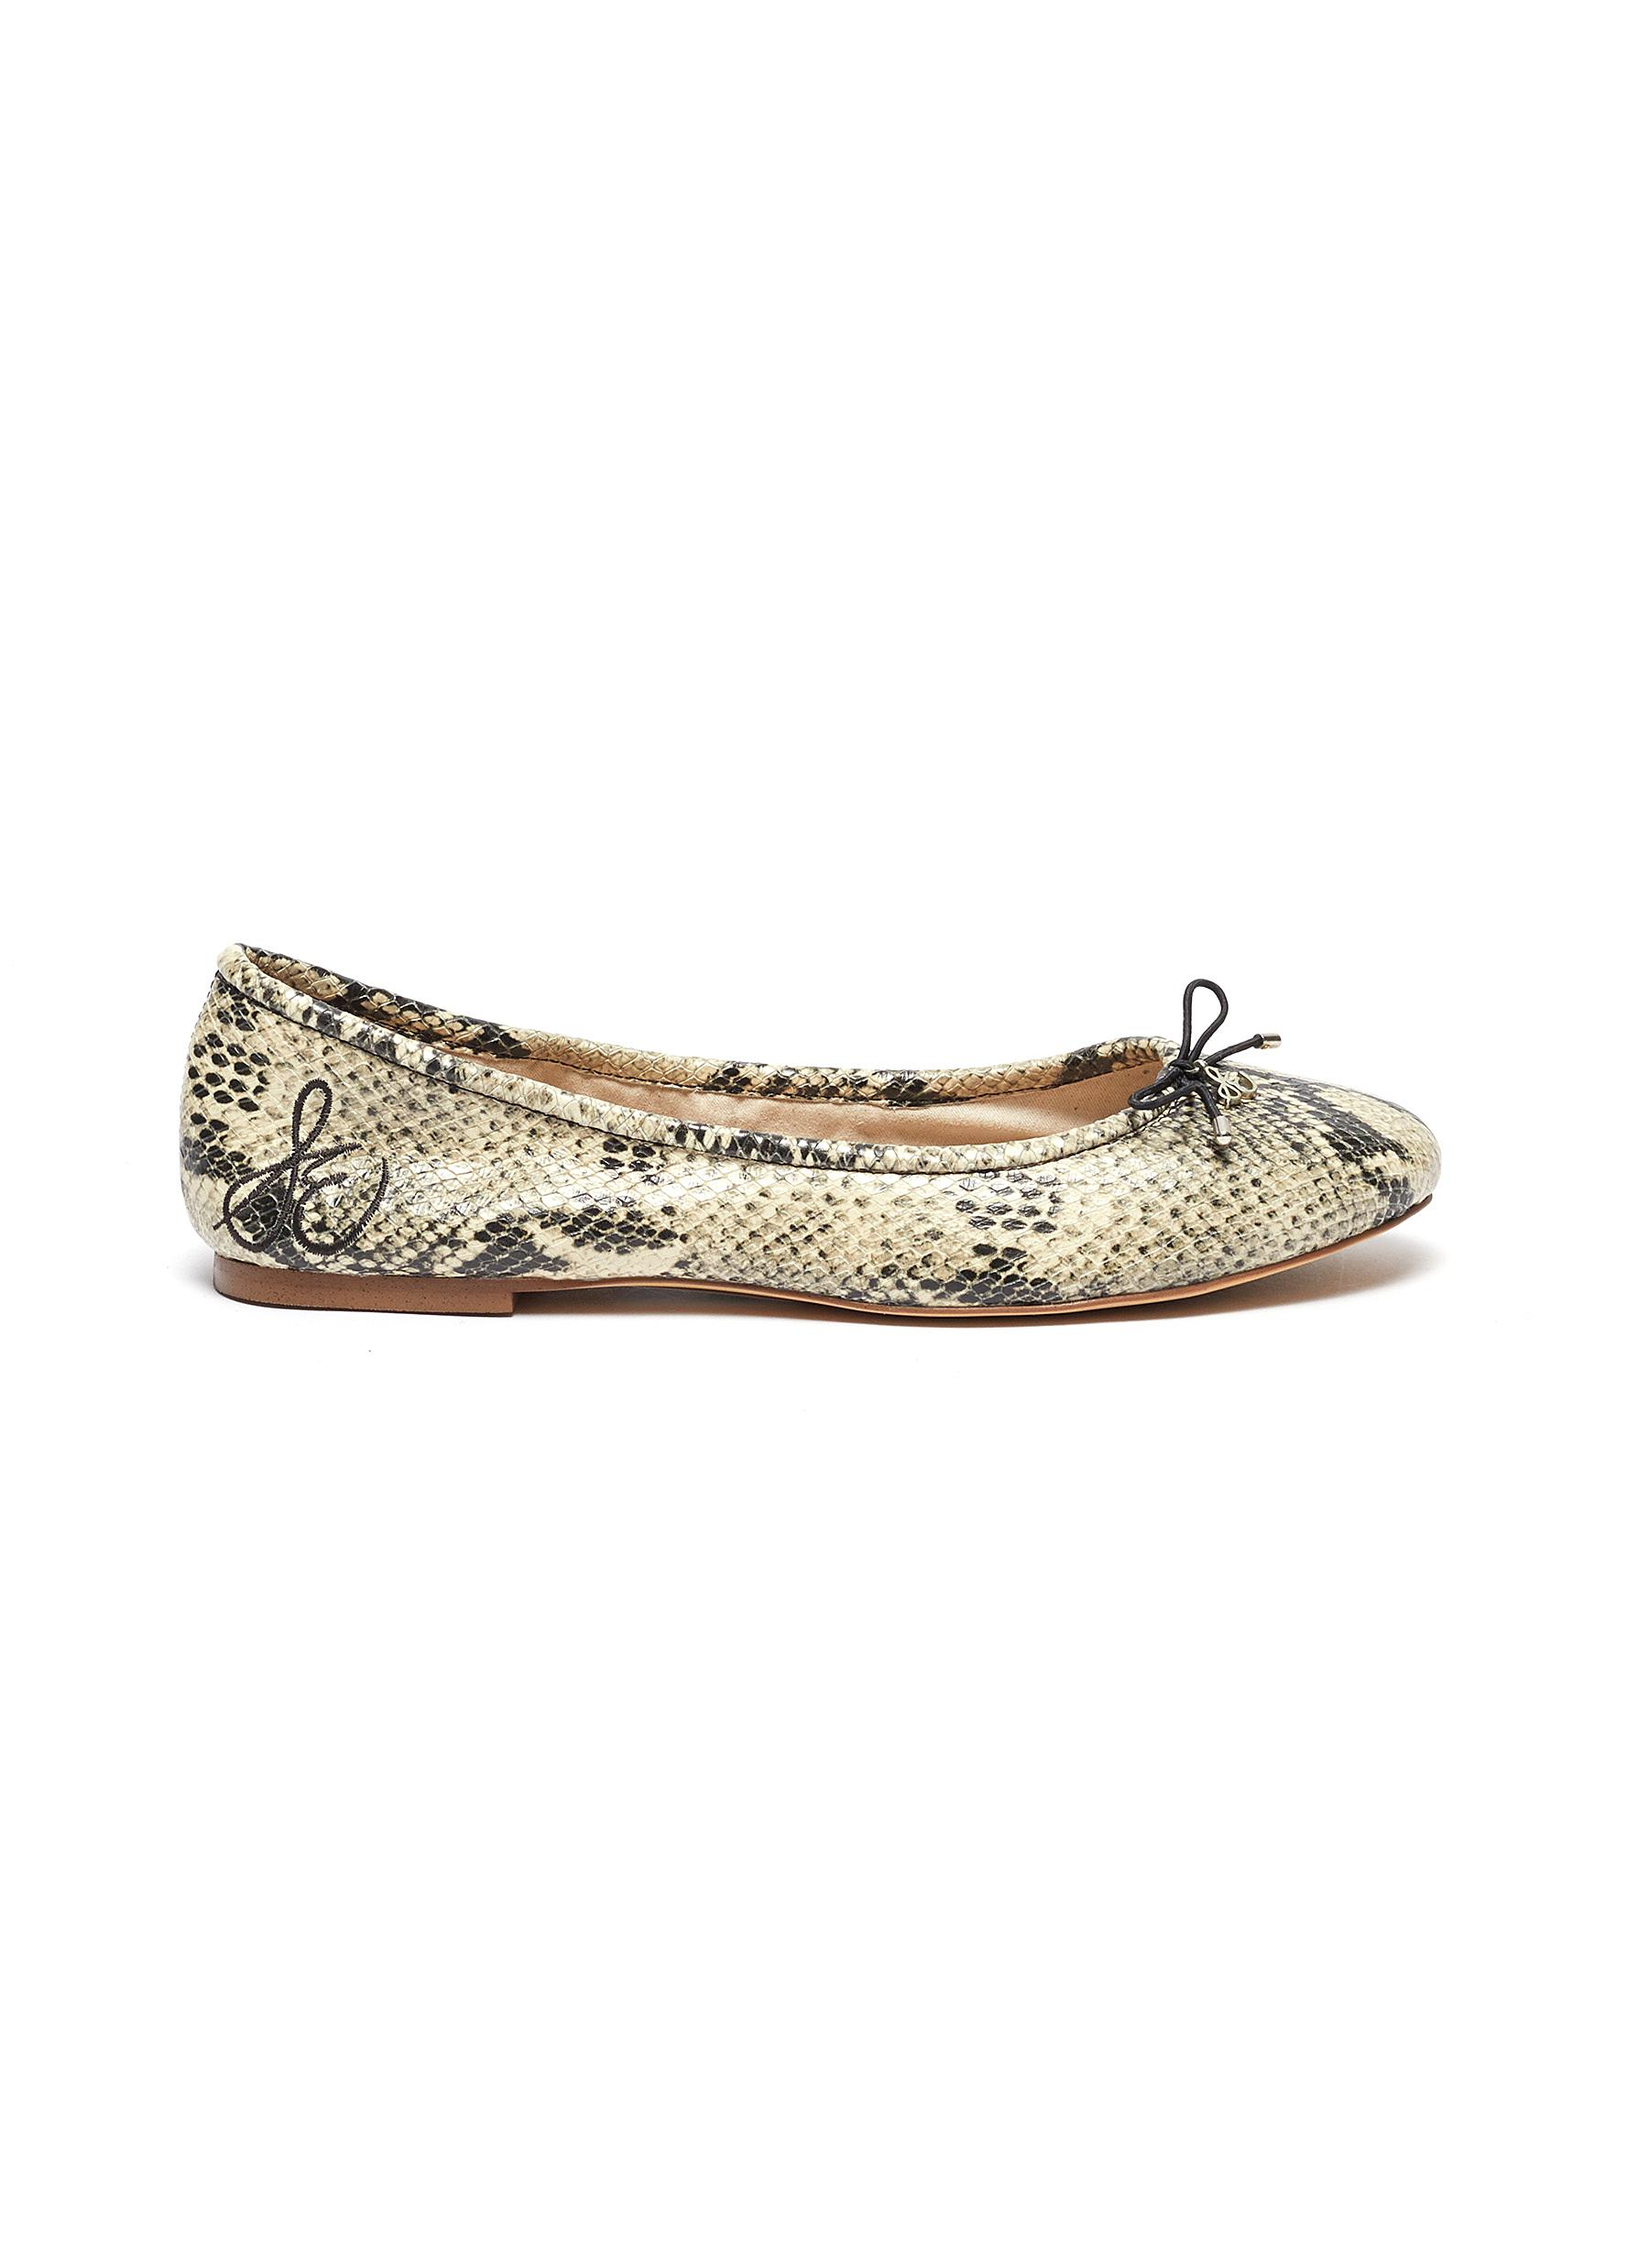 Felicia snake-embossed leather ballet flats by Sam Edelman